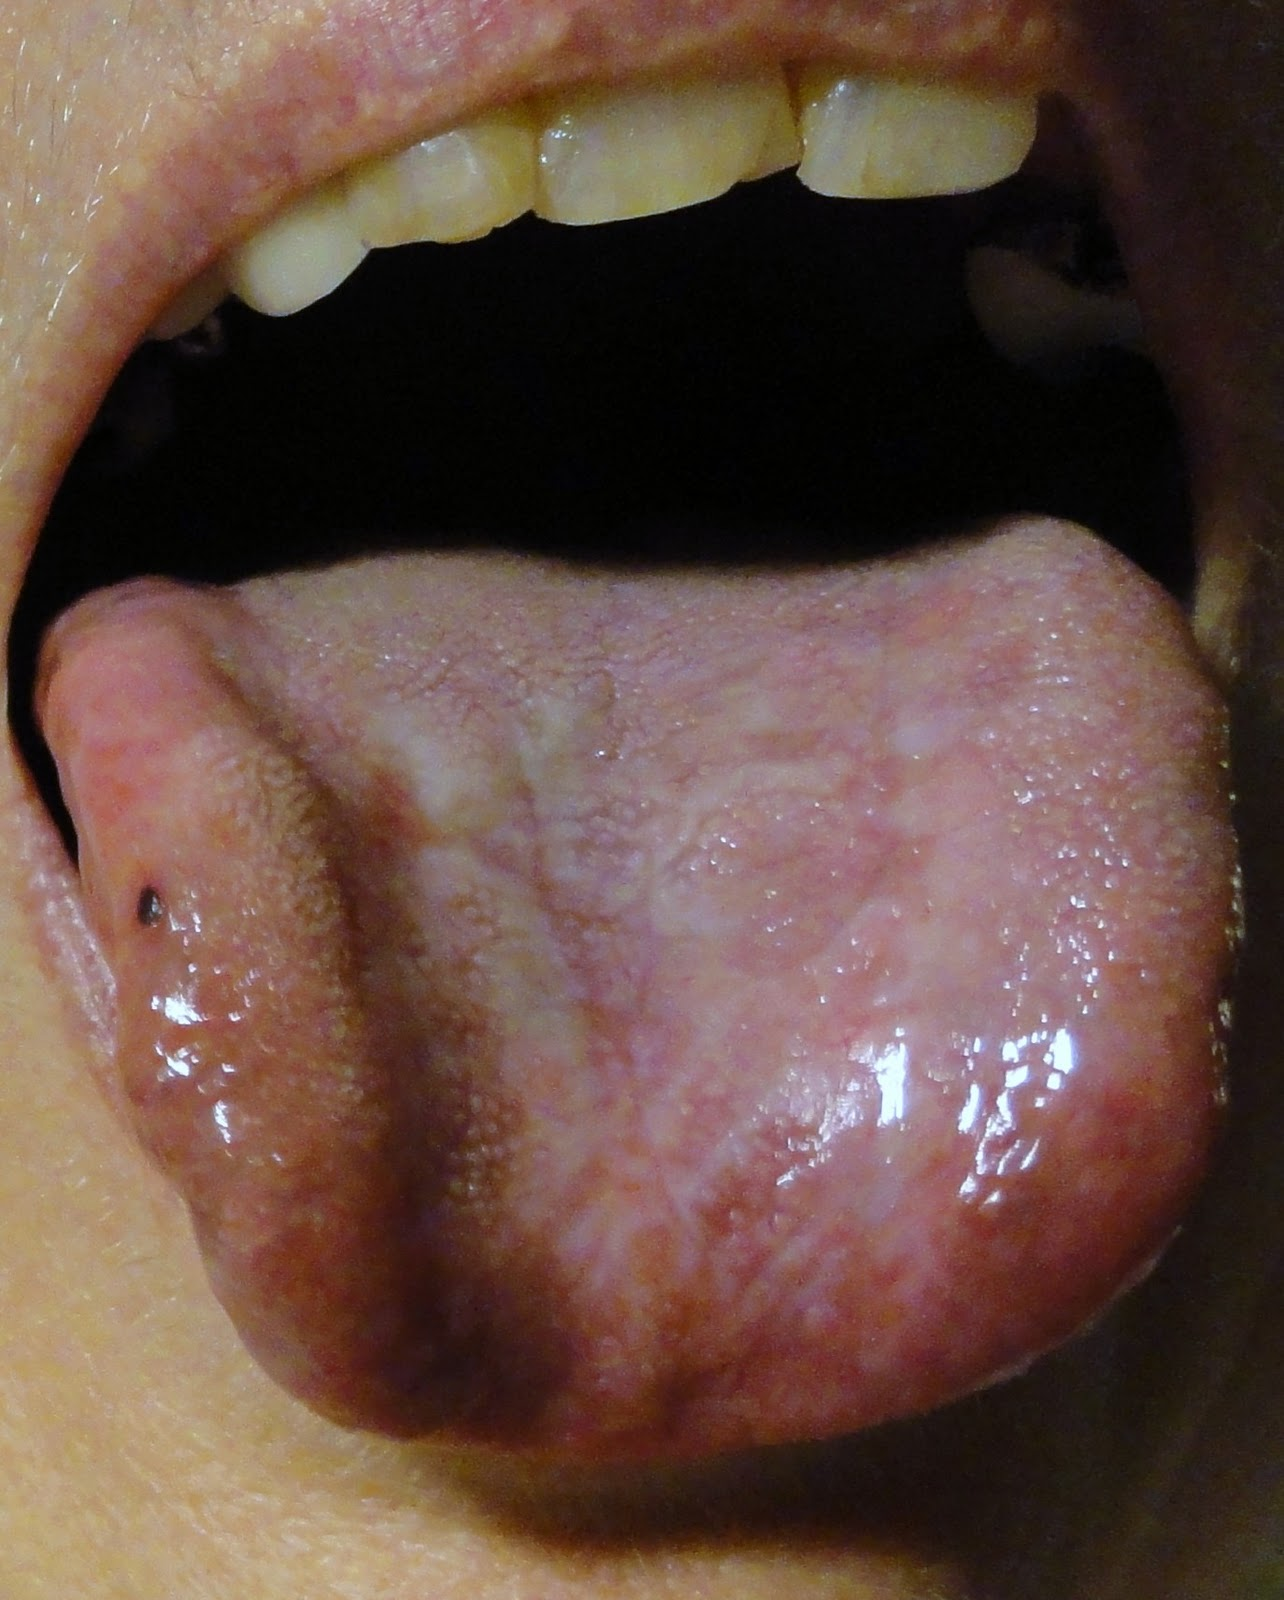 Erosive Oral Lichen Planus: September 2010